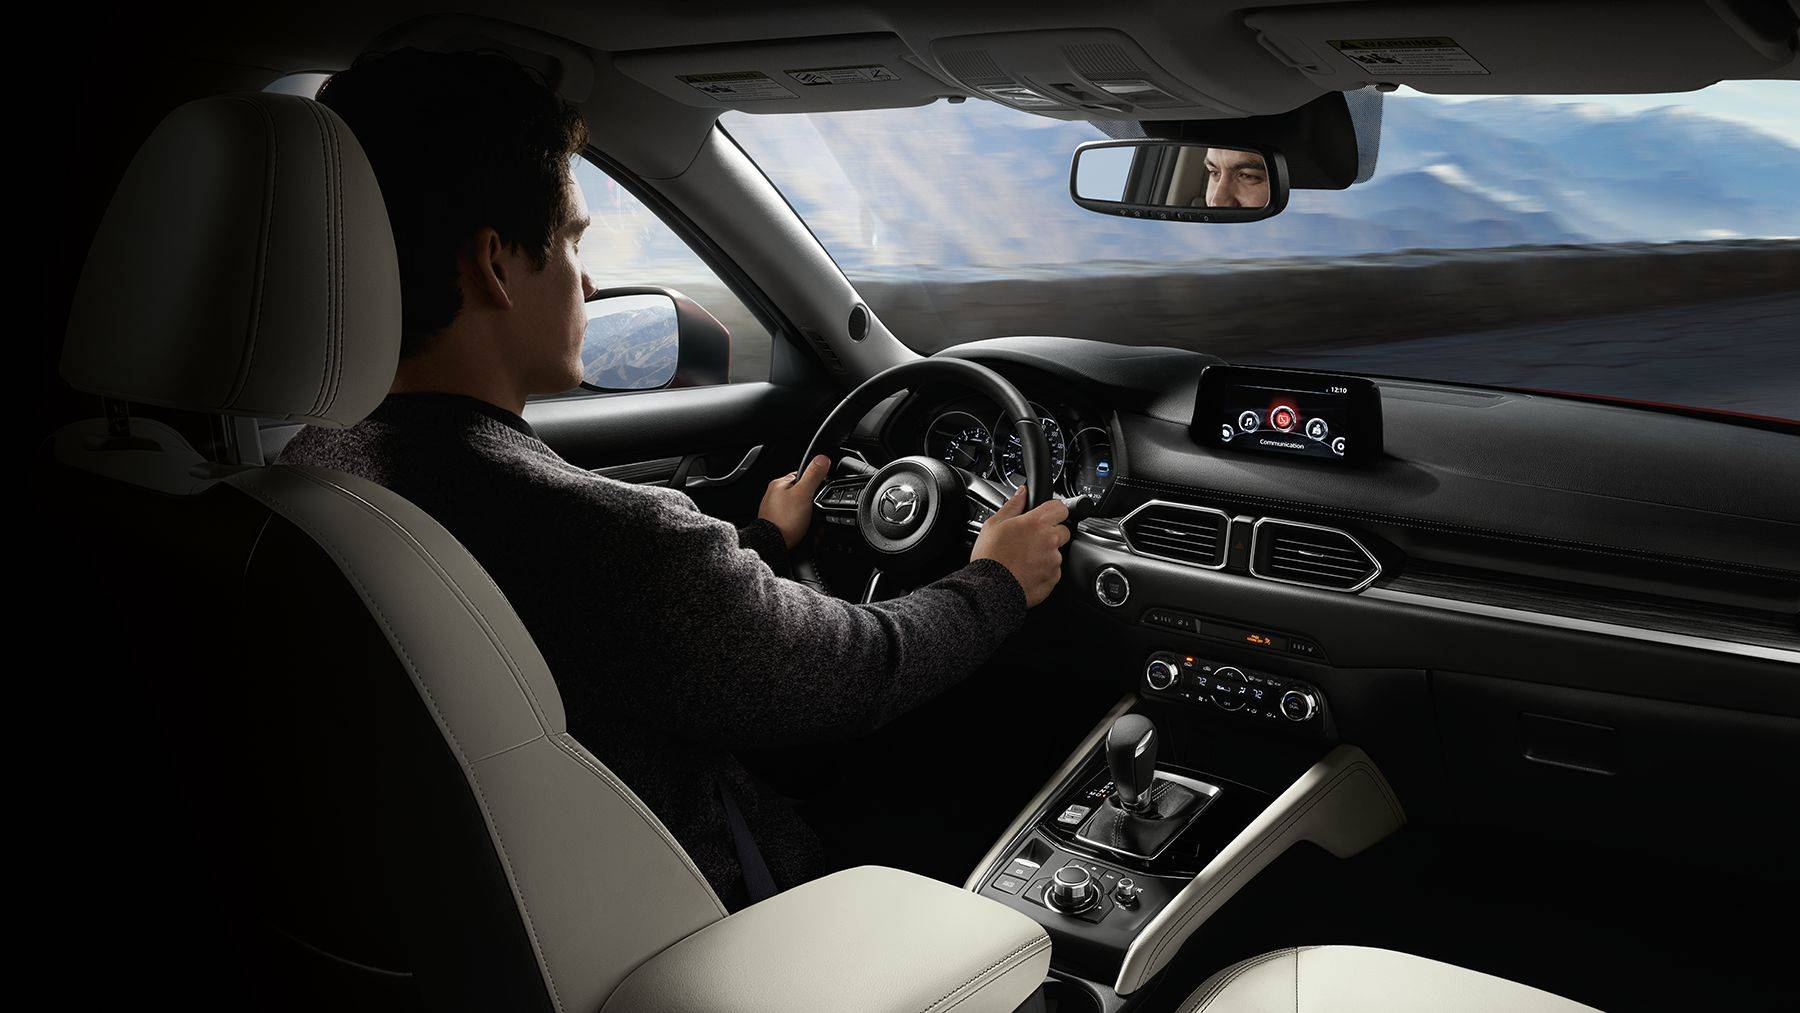 Interior of the 2018 Mazda CX-5